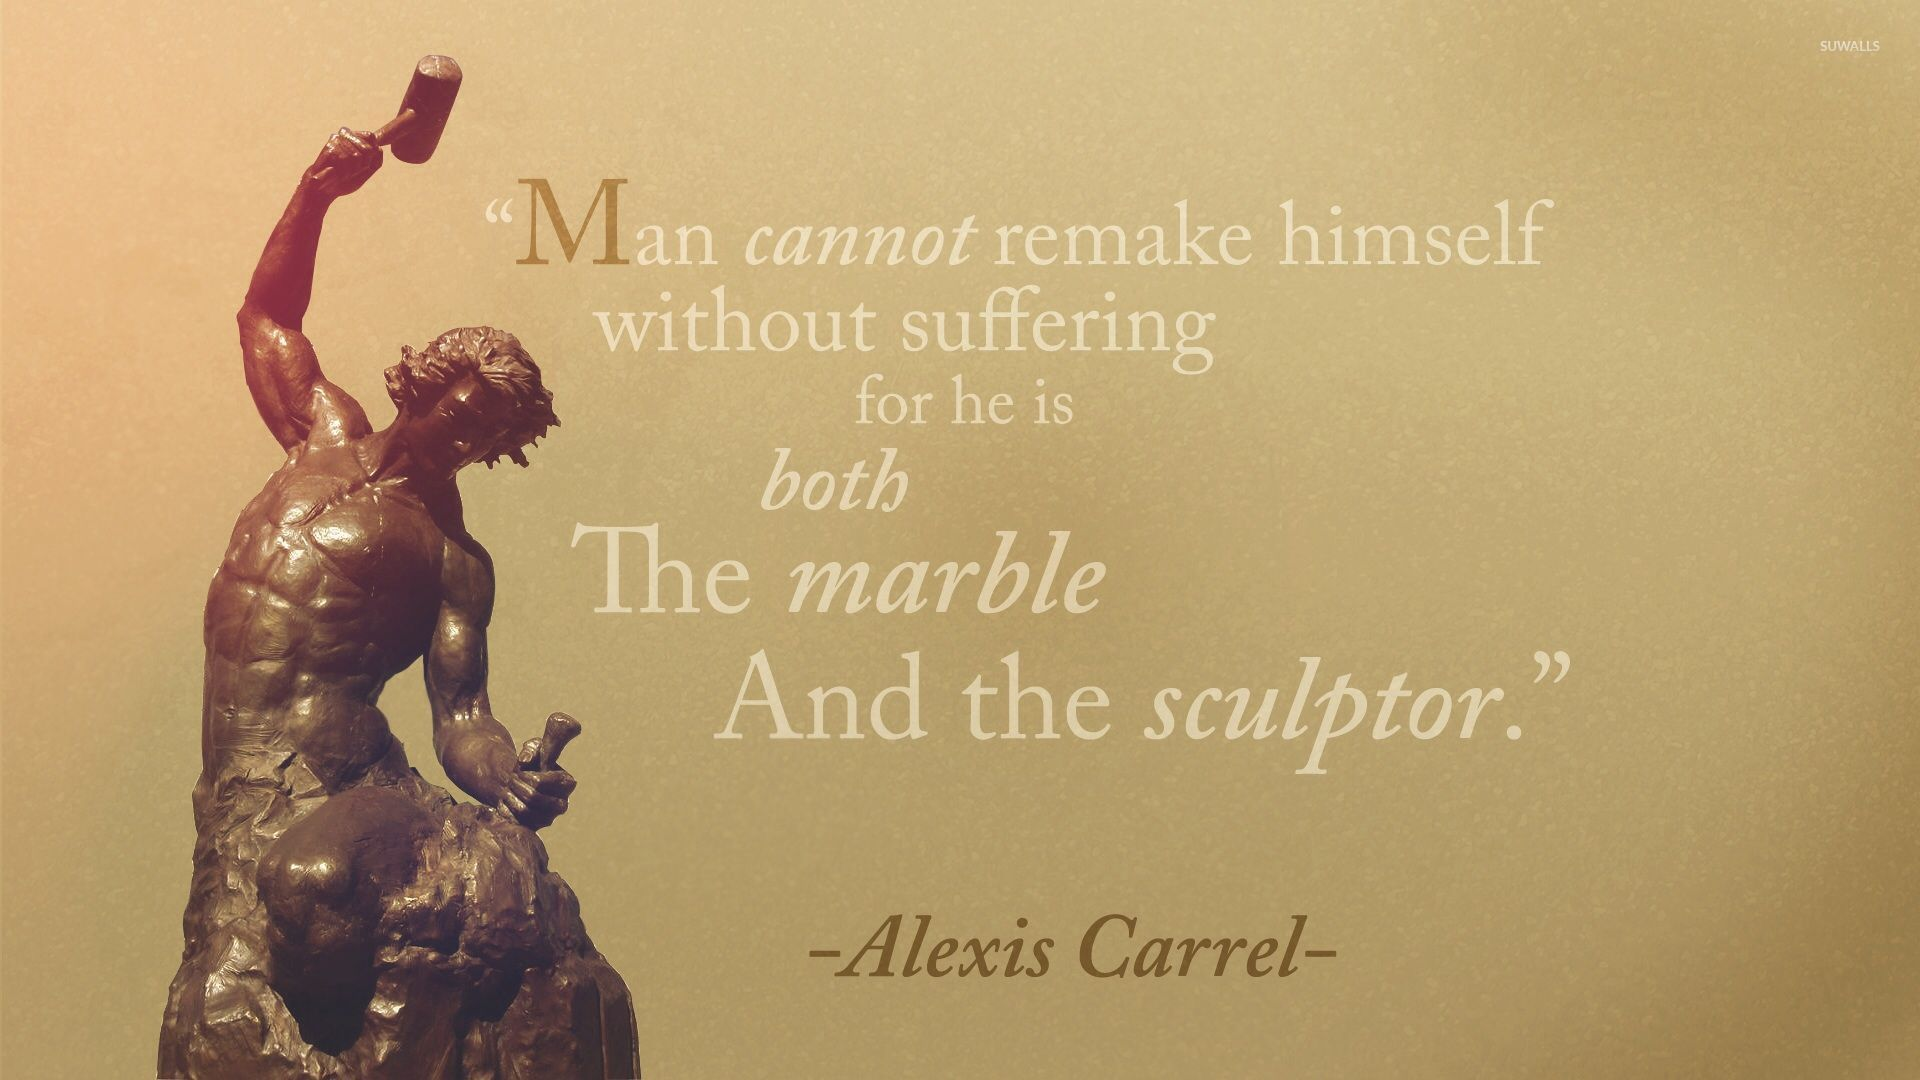 Alexis Carrel Quote Wallpaper Quote Wallpapers 31373